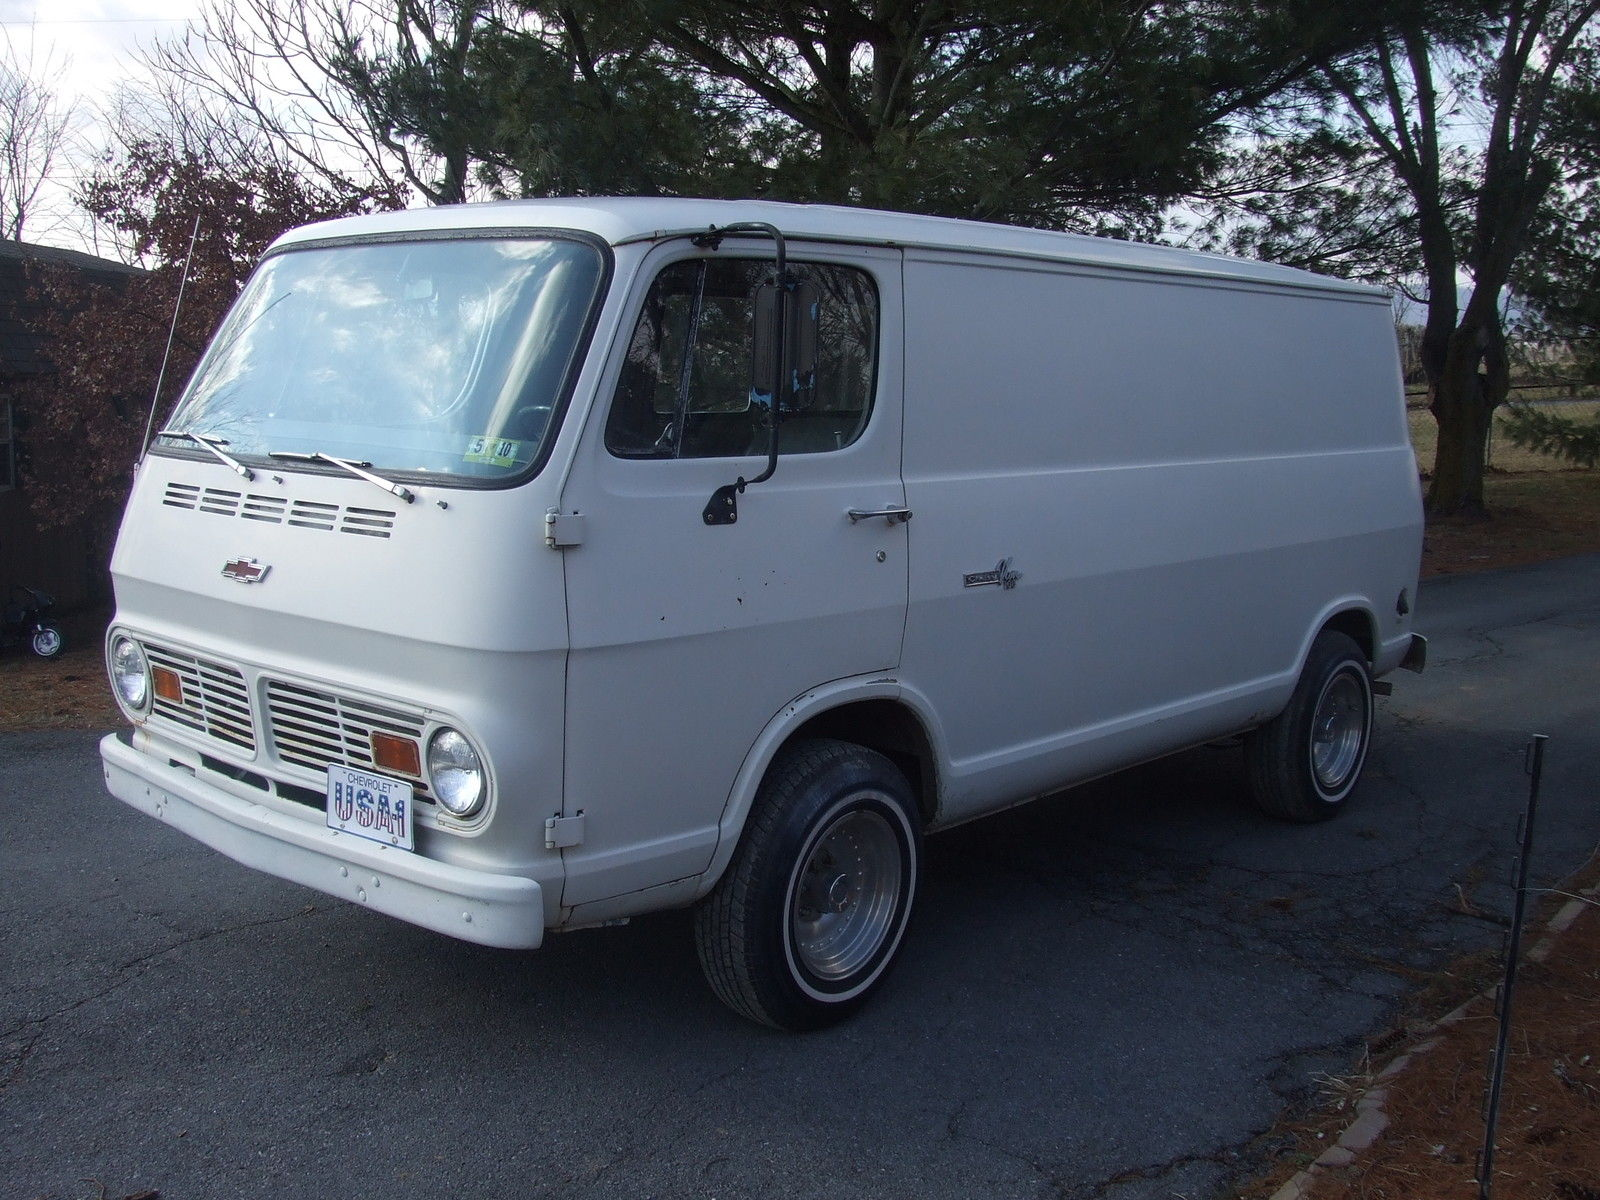 1967 chevy van for sale in martinsburg west virginia united states. Black Bedroom Furniture Sets. Home Design Ideas